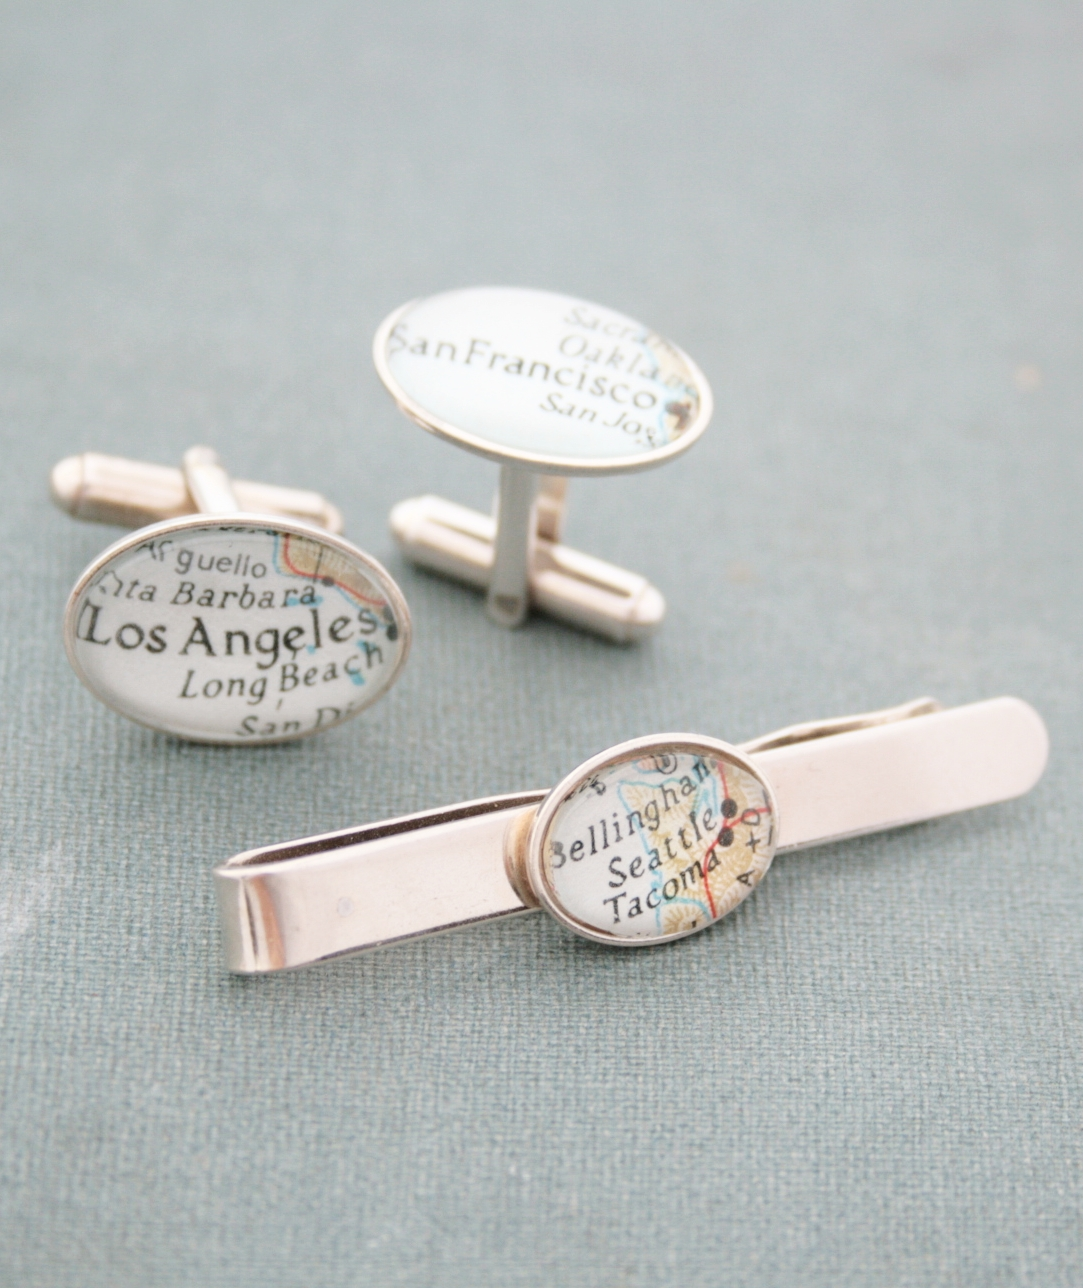 tie clip and cufflinks with custom map destinations